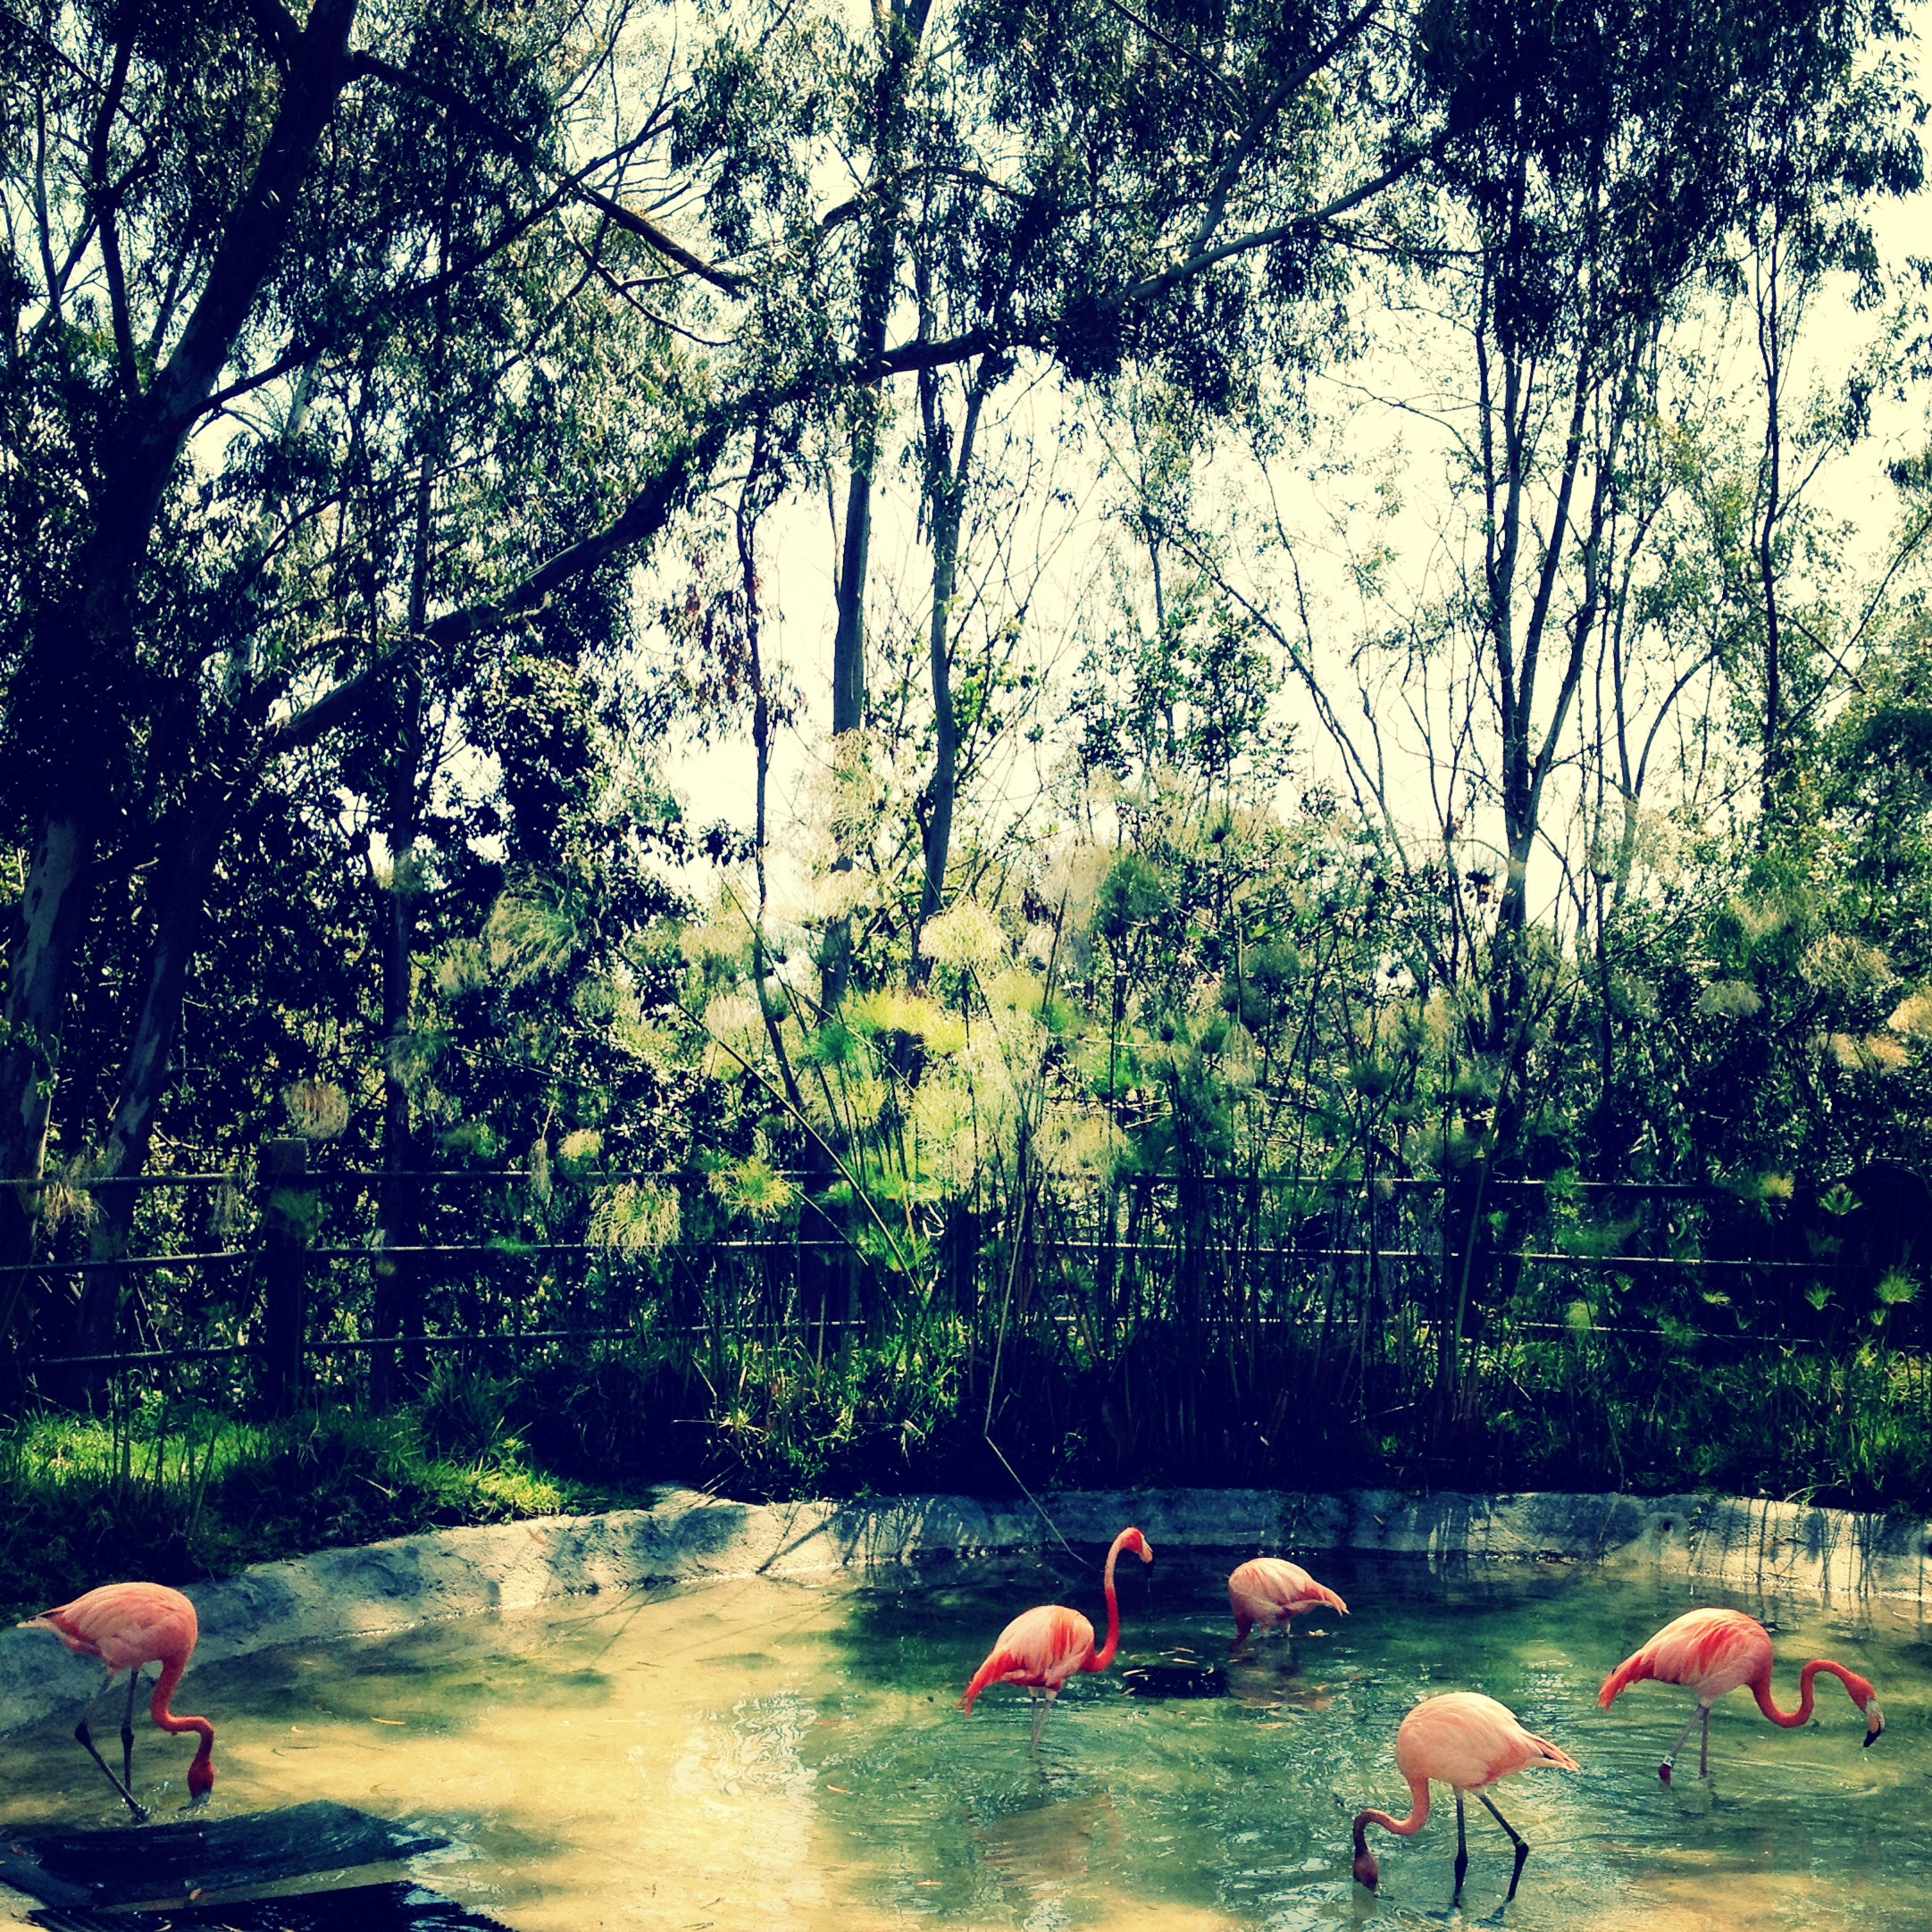 san-diego-zoo-flamingos